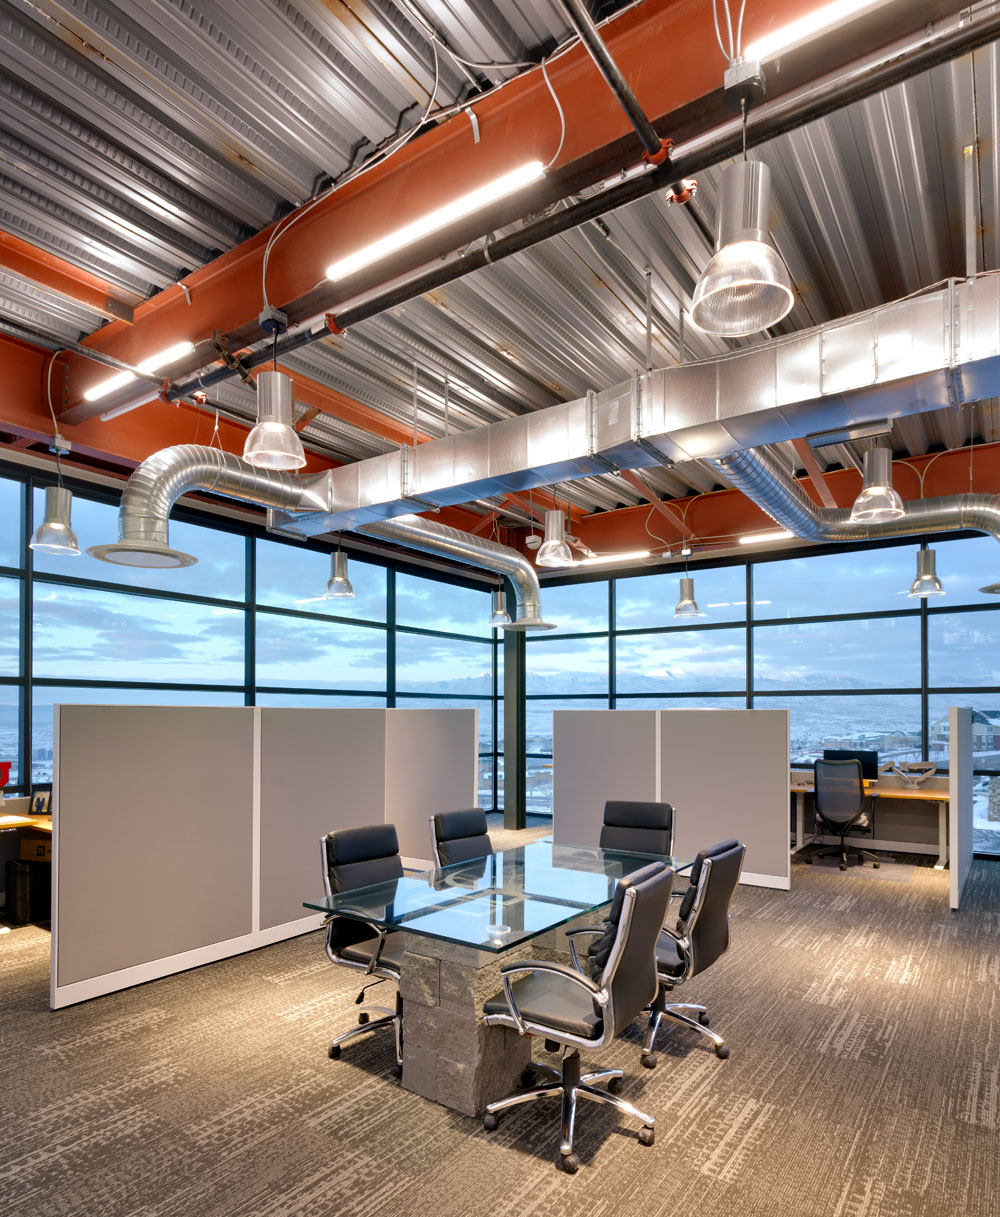 Utah-Tenant-Improvement-Architecture-Sirq-Construction-Offices